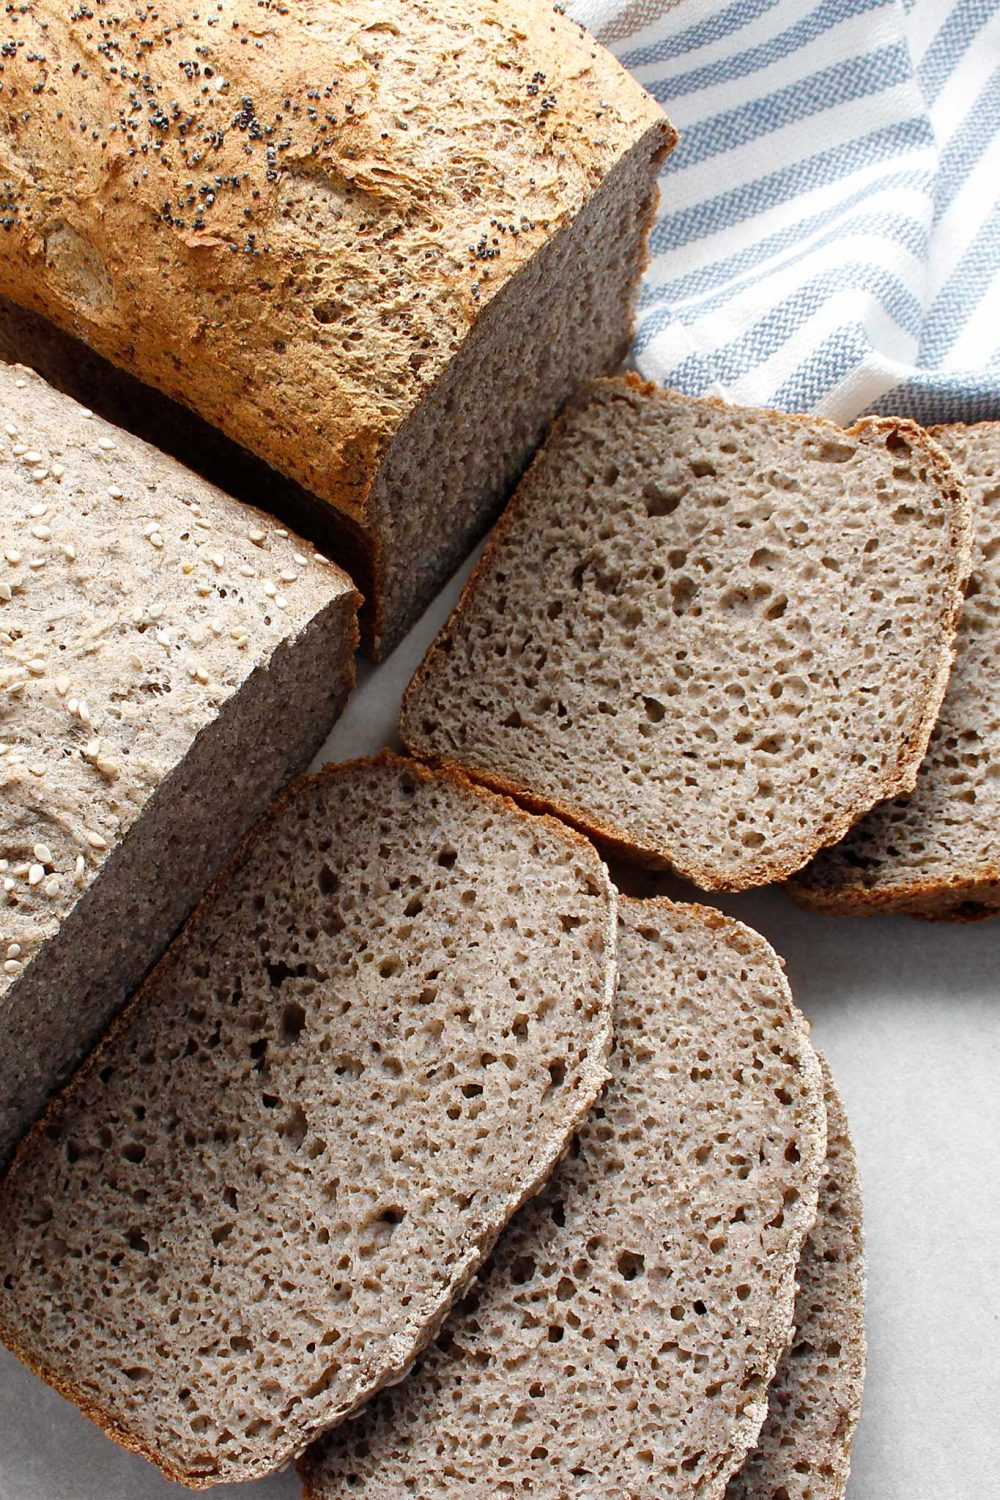 Sliced Buckwheat Hemp Bread. Showing the perfect crumb and texture.